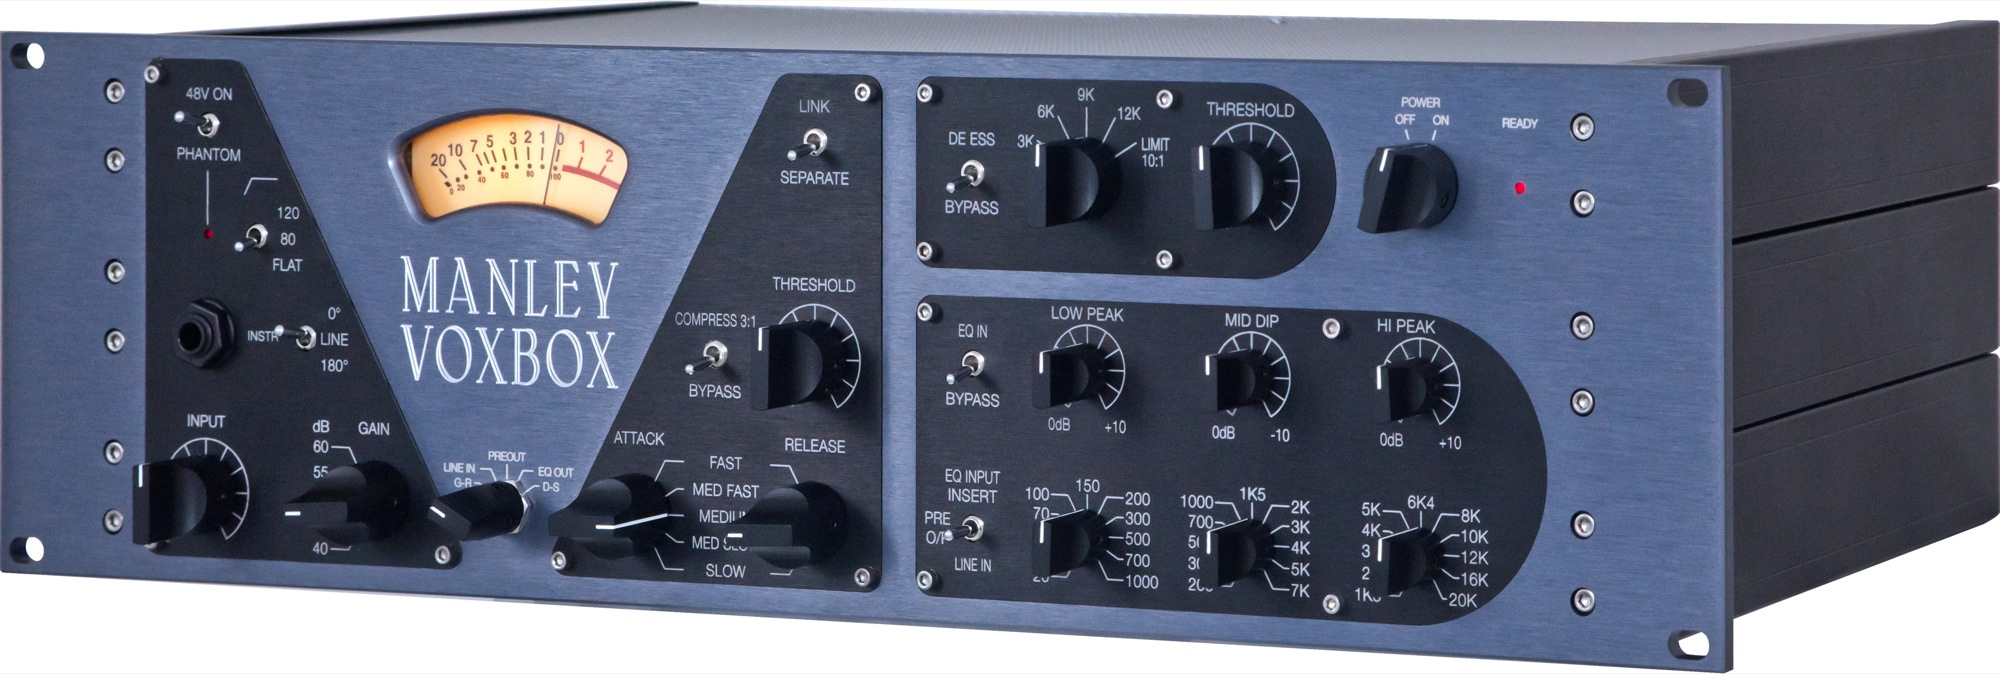 Manley Labs VOXBOX combo microphone preamplifier mic preamp pre compressor EQ equalizer limiter de esser angle side MVBX